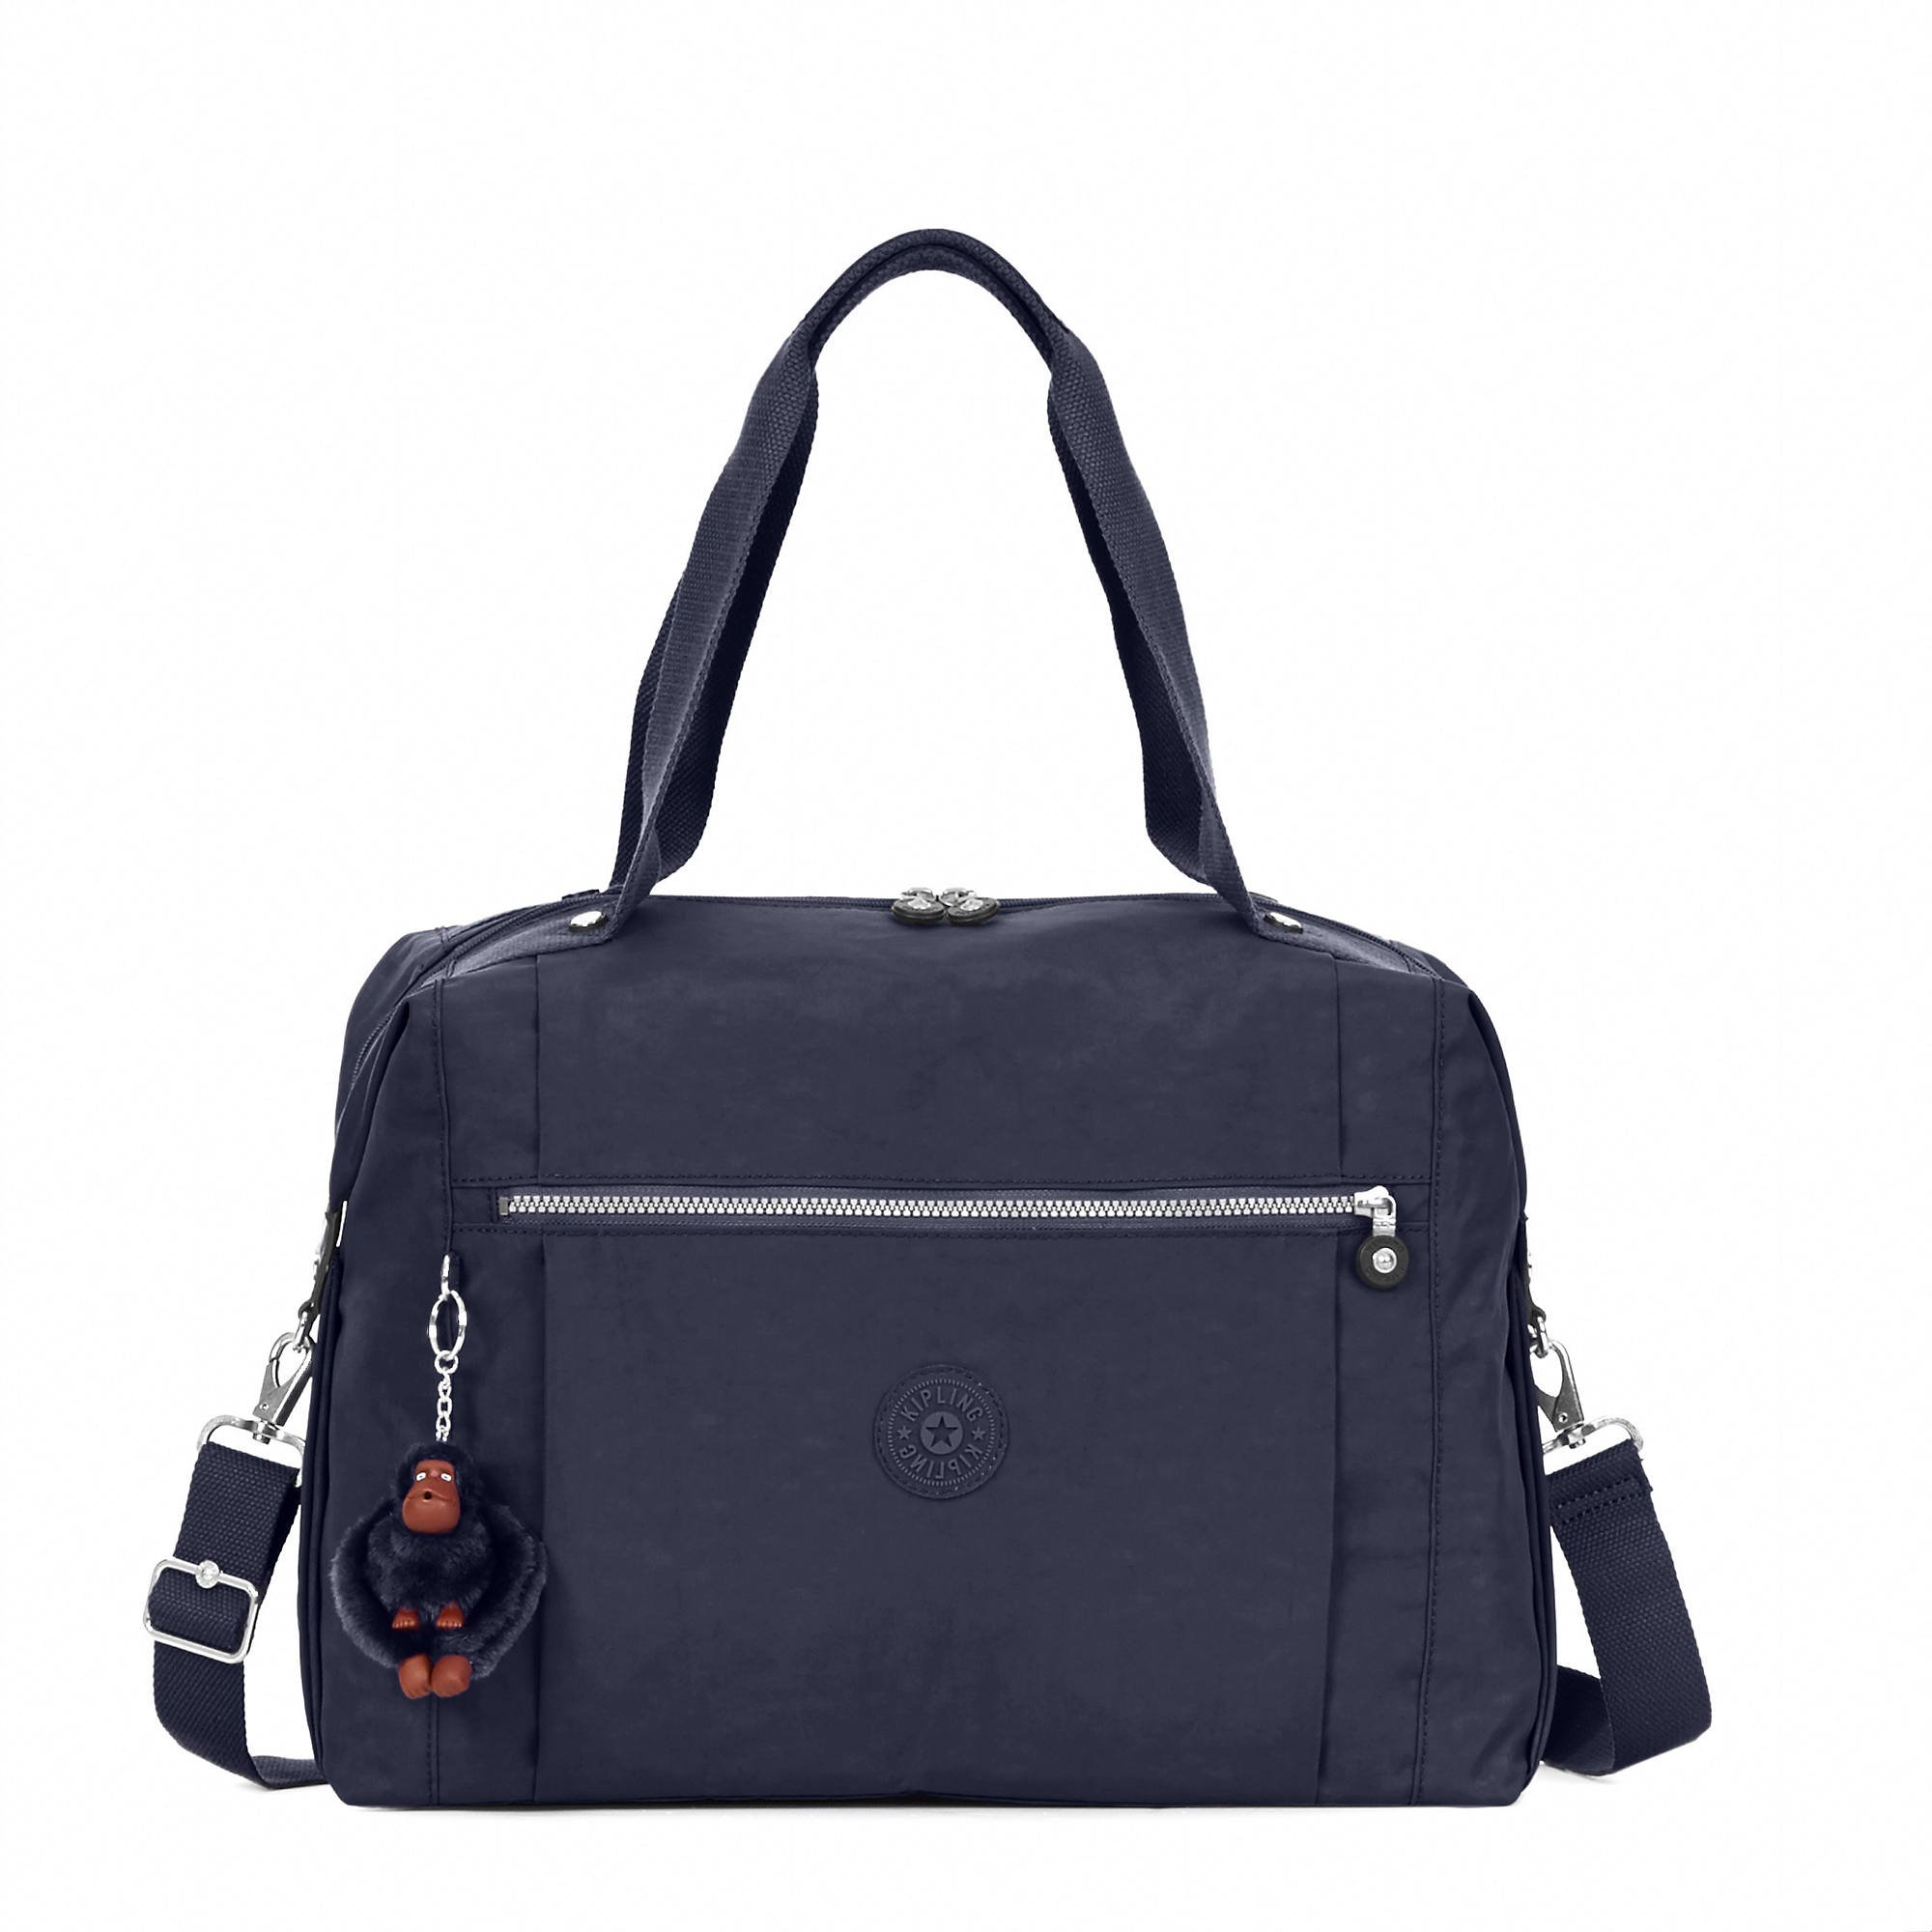 Kipling Women's Ferra Weekender Duffel Bag One Size Blue